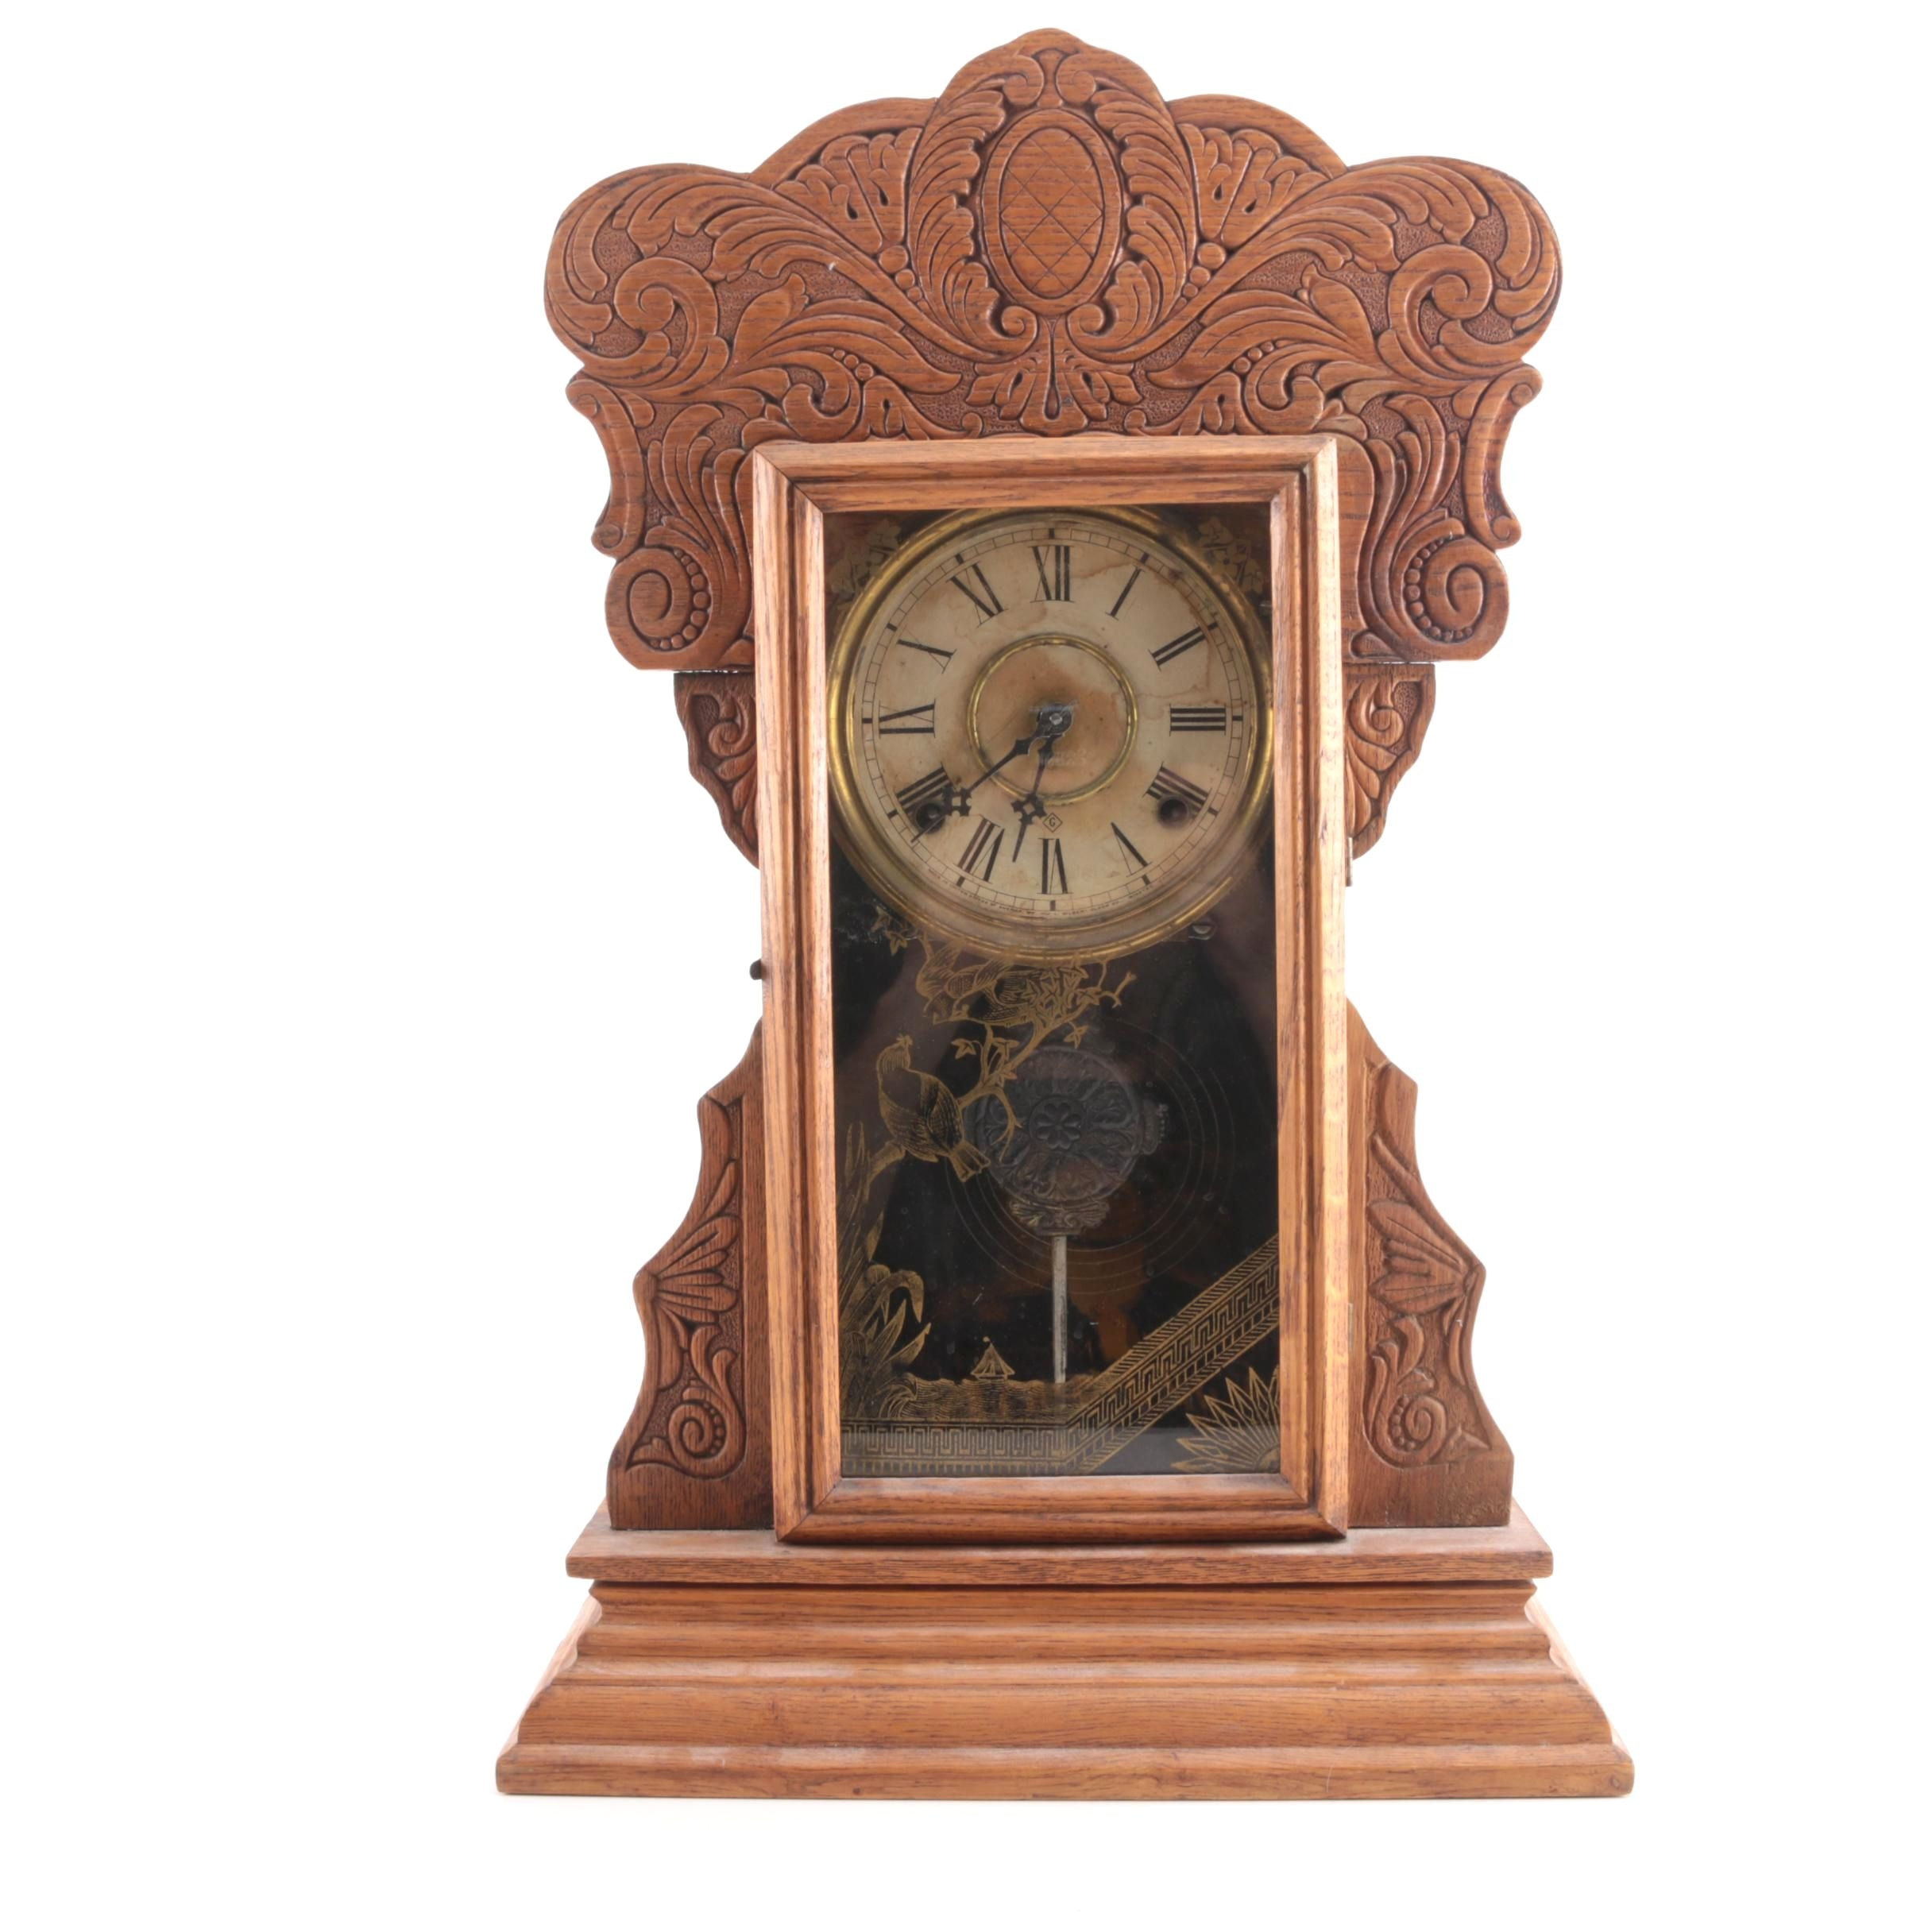 Wm. L. Gilbert Clock Co. Pendulum Mantel Clock